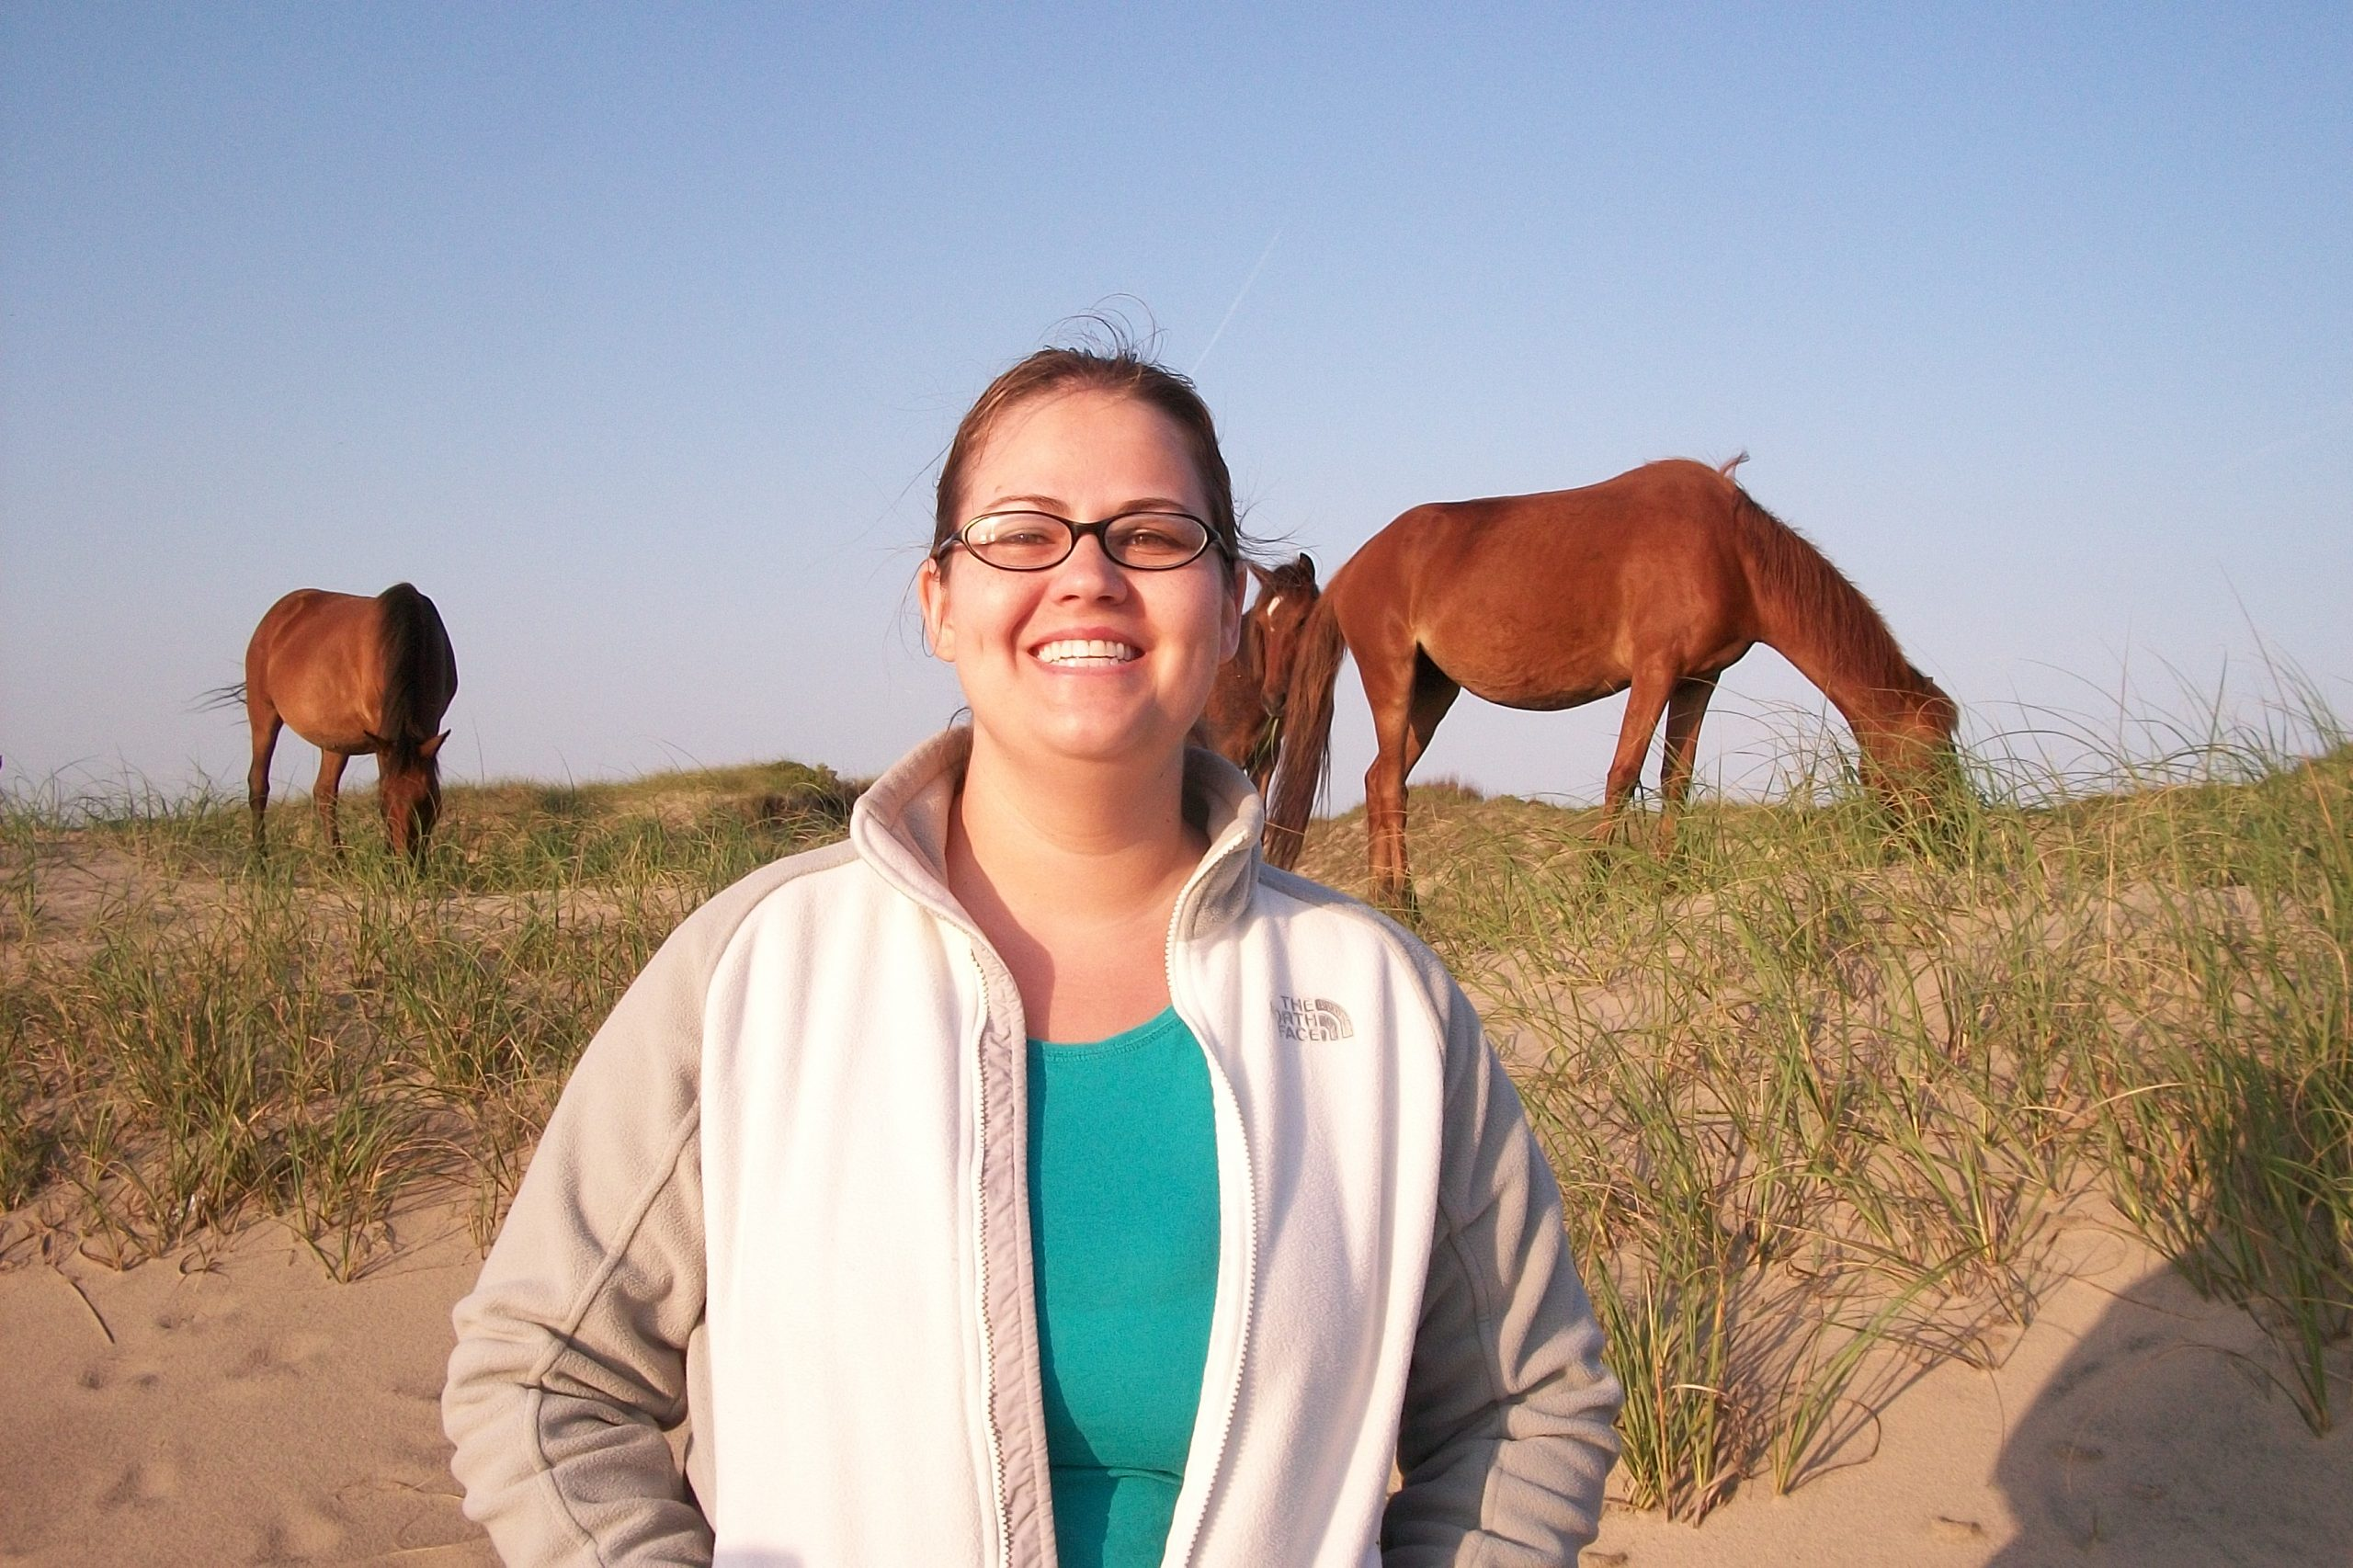 Me and the horses